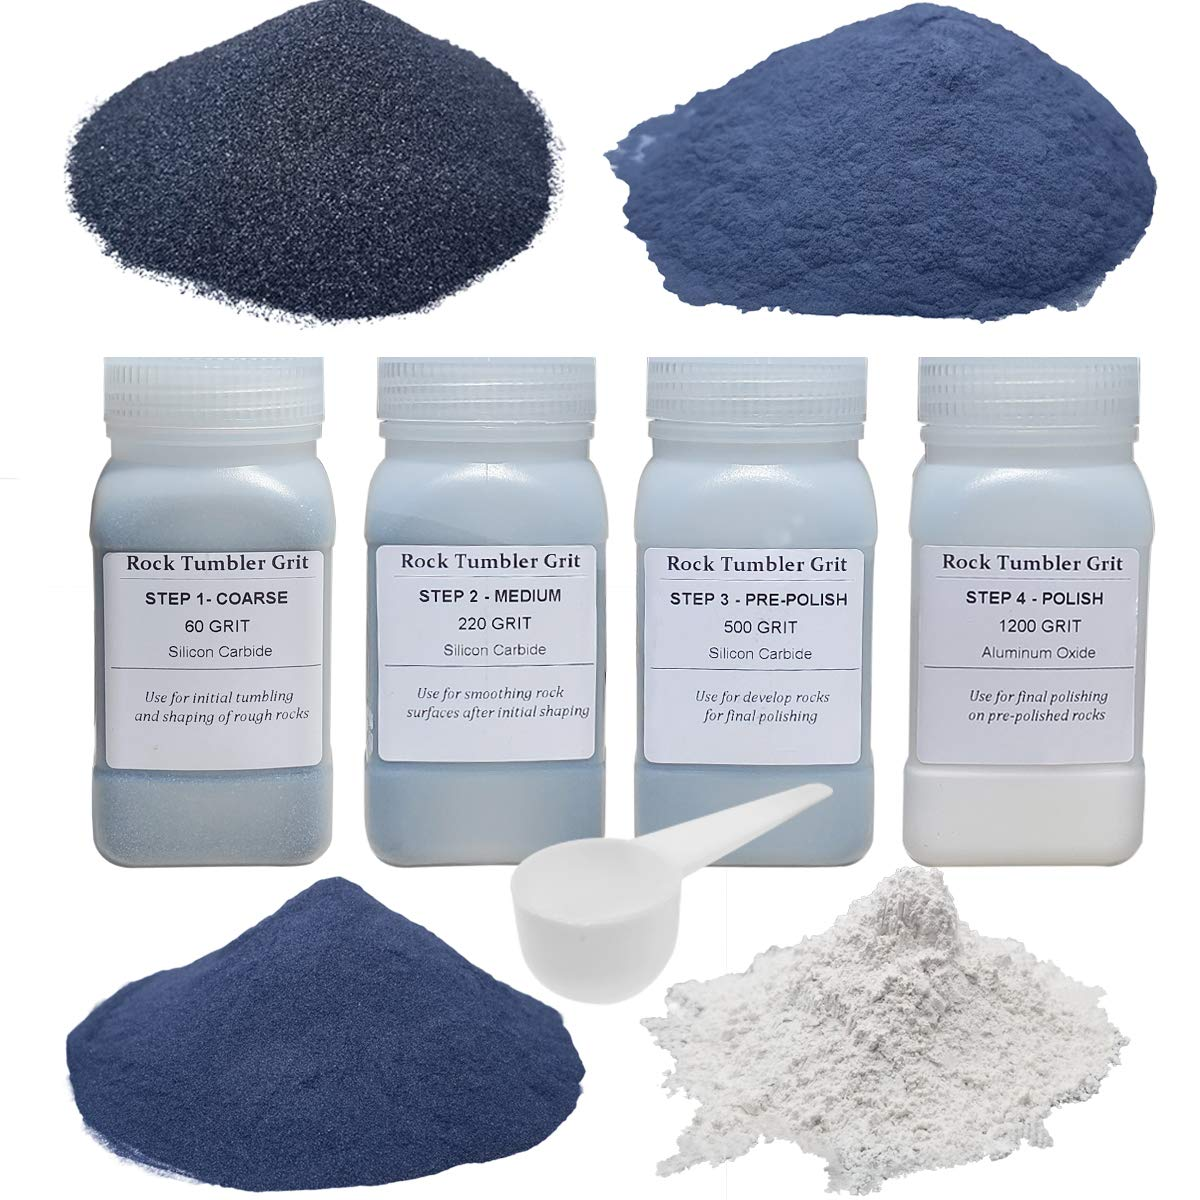 Tonmp Rock Tumbler Refill Grit Media Kit (3 pounds)| 4-Steps for Tumbling Stones, Compatible with National Geographic, Thumler, and Lortone Tumblers by Tonmp